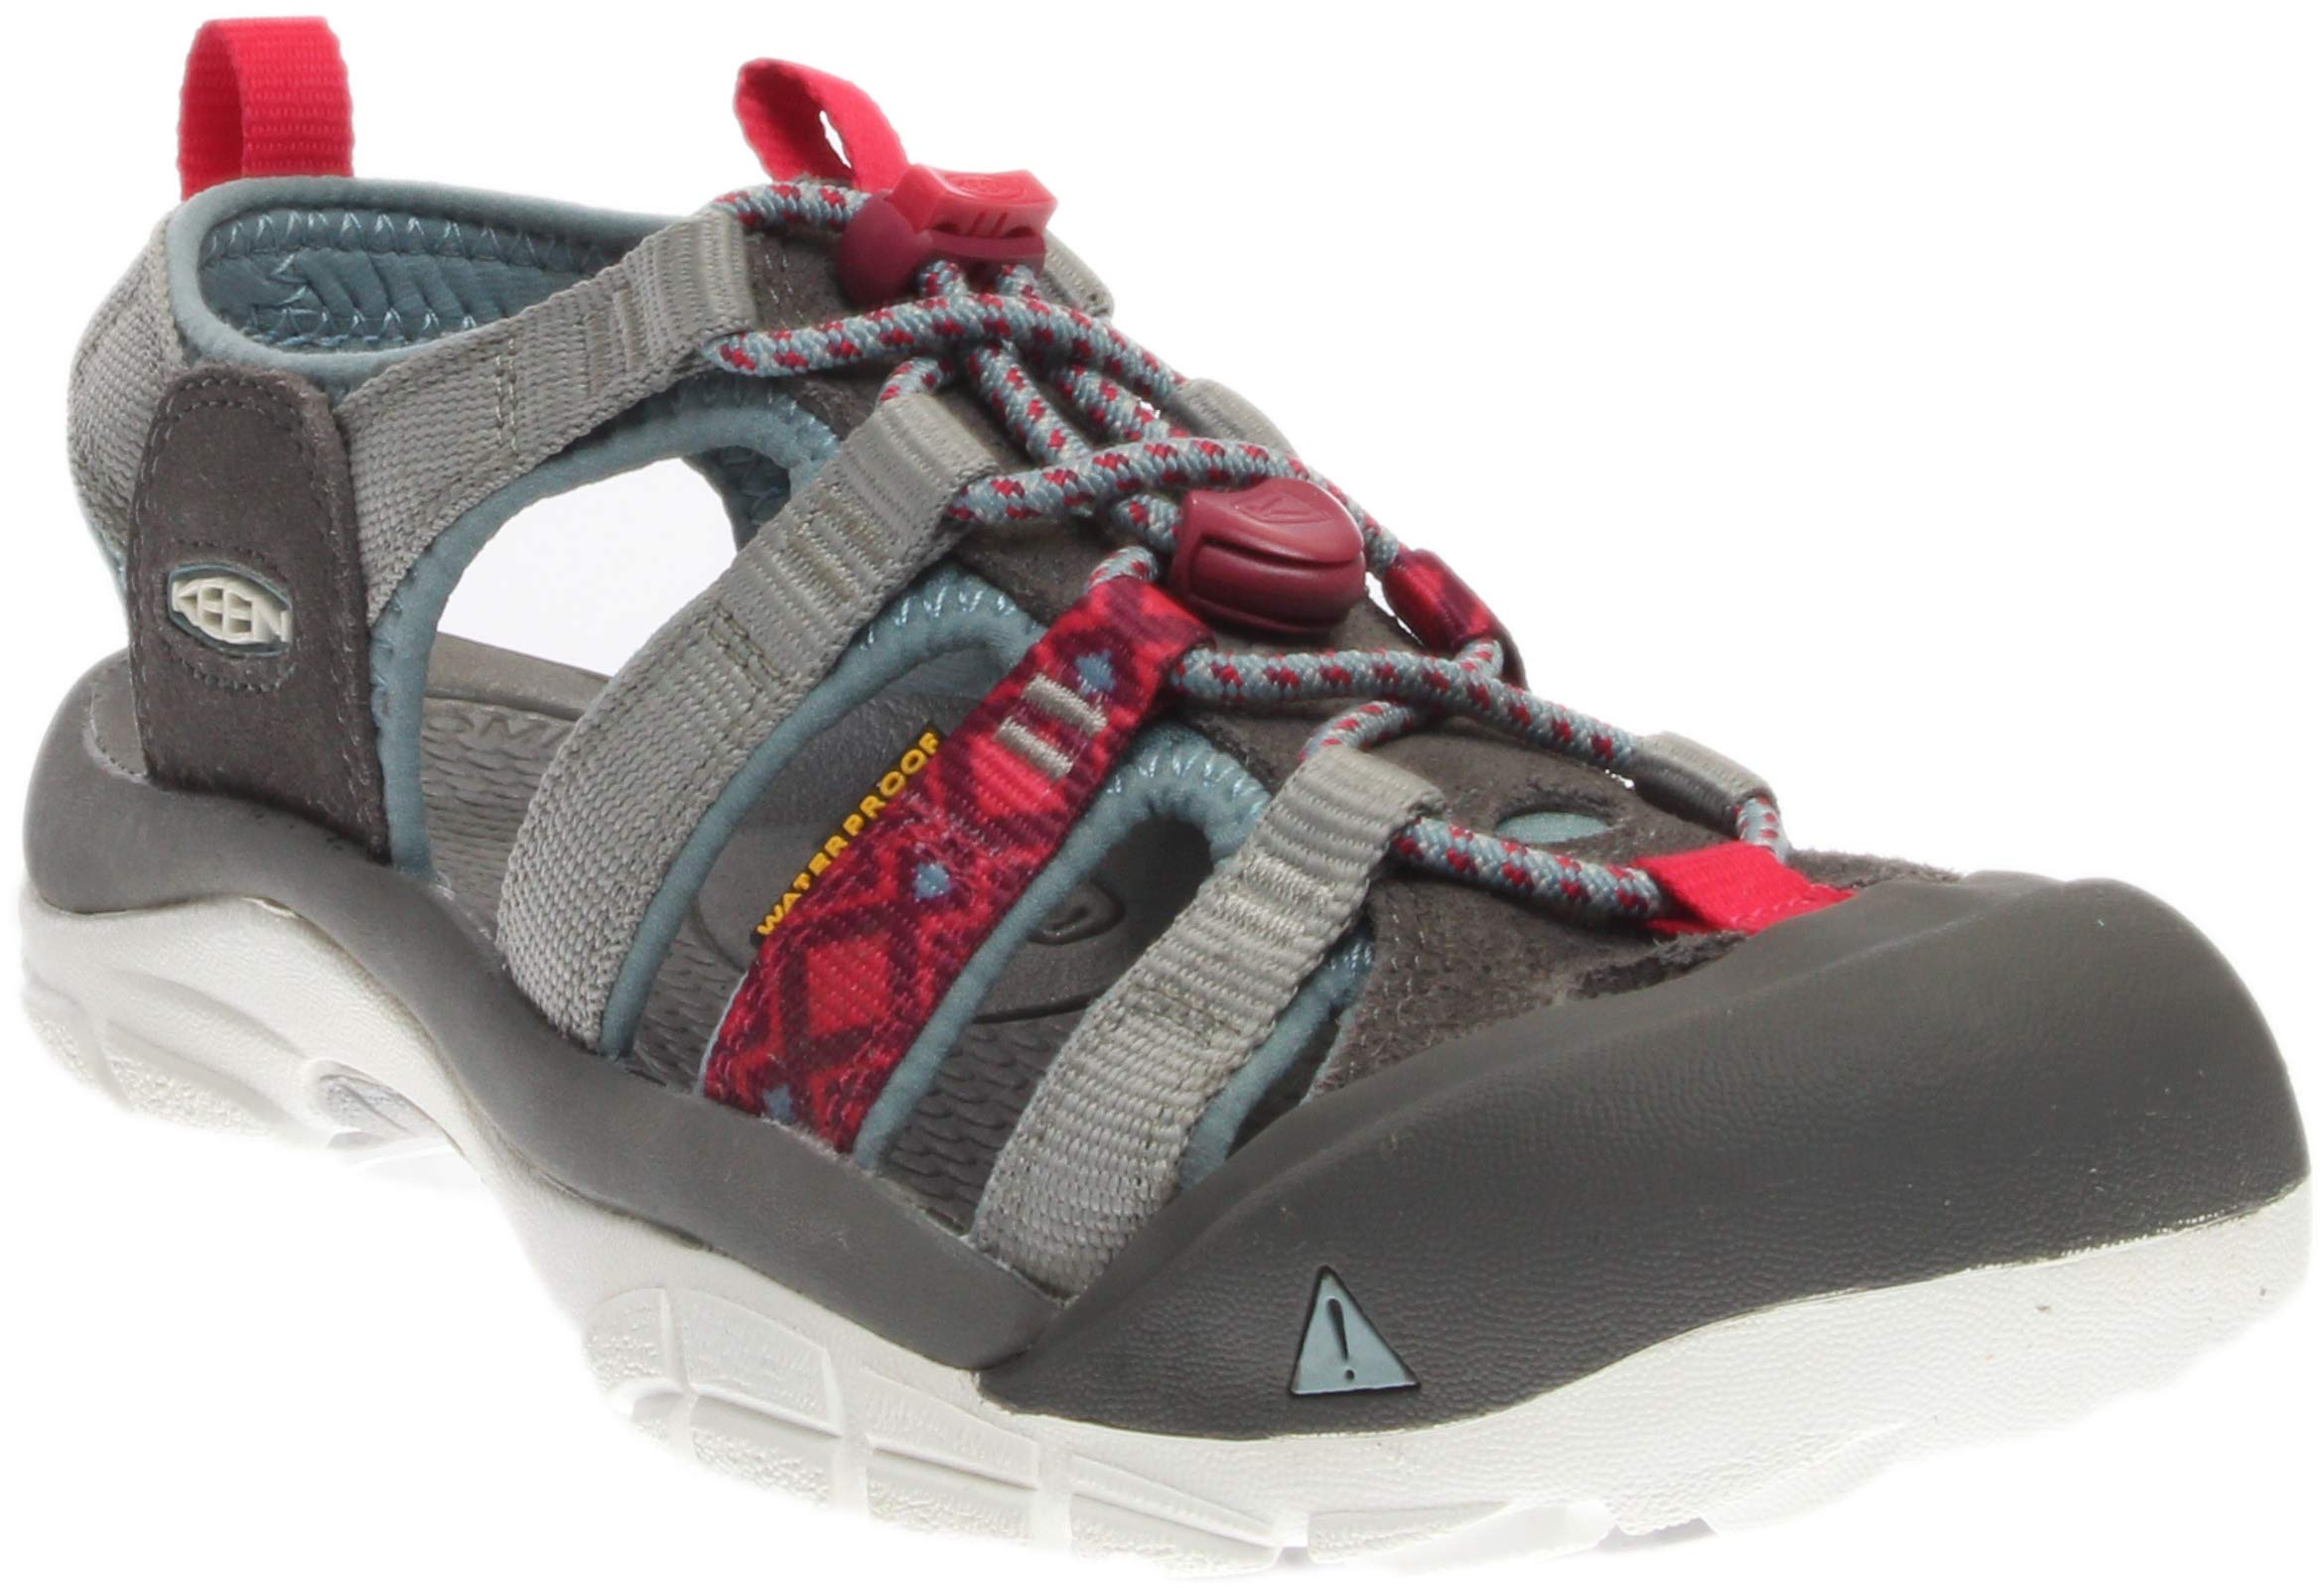 KEEN Women's Newport Evo H2 Hiking Shoe, Neutral Gray/Raspberry, 9 M US